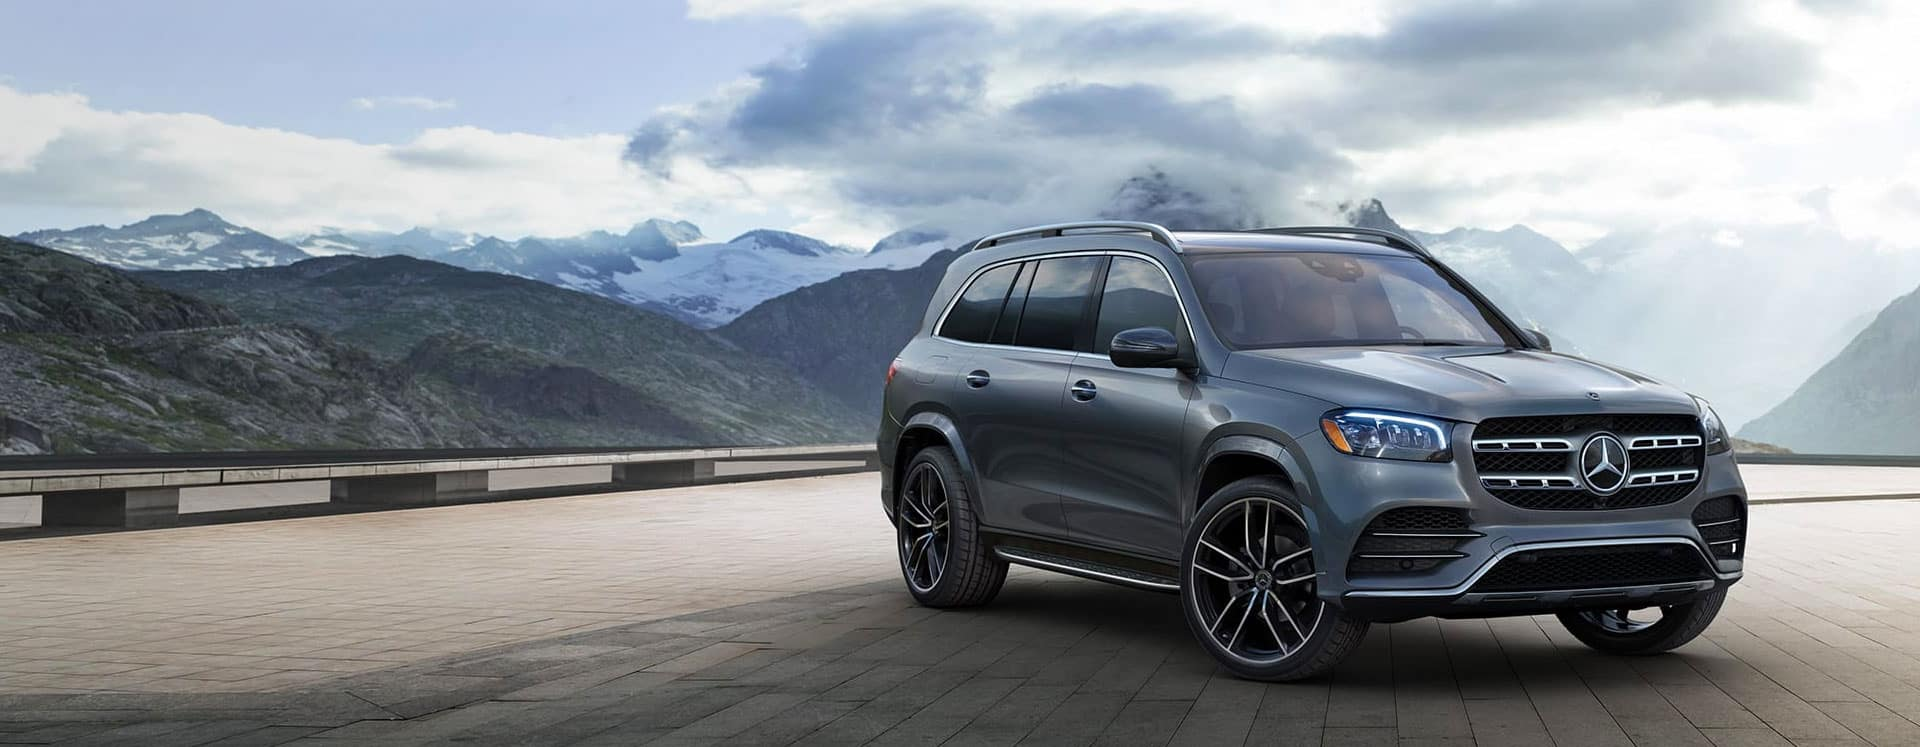 Grey Mercedes Benz SUV on a brick surface with mountains in the background